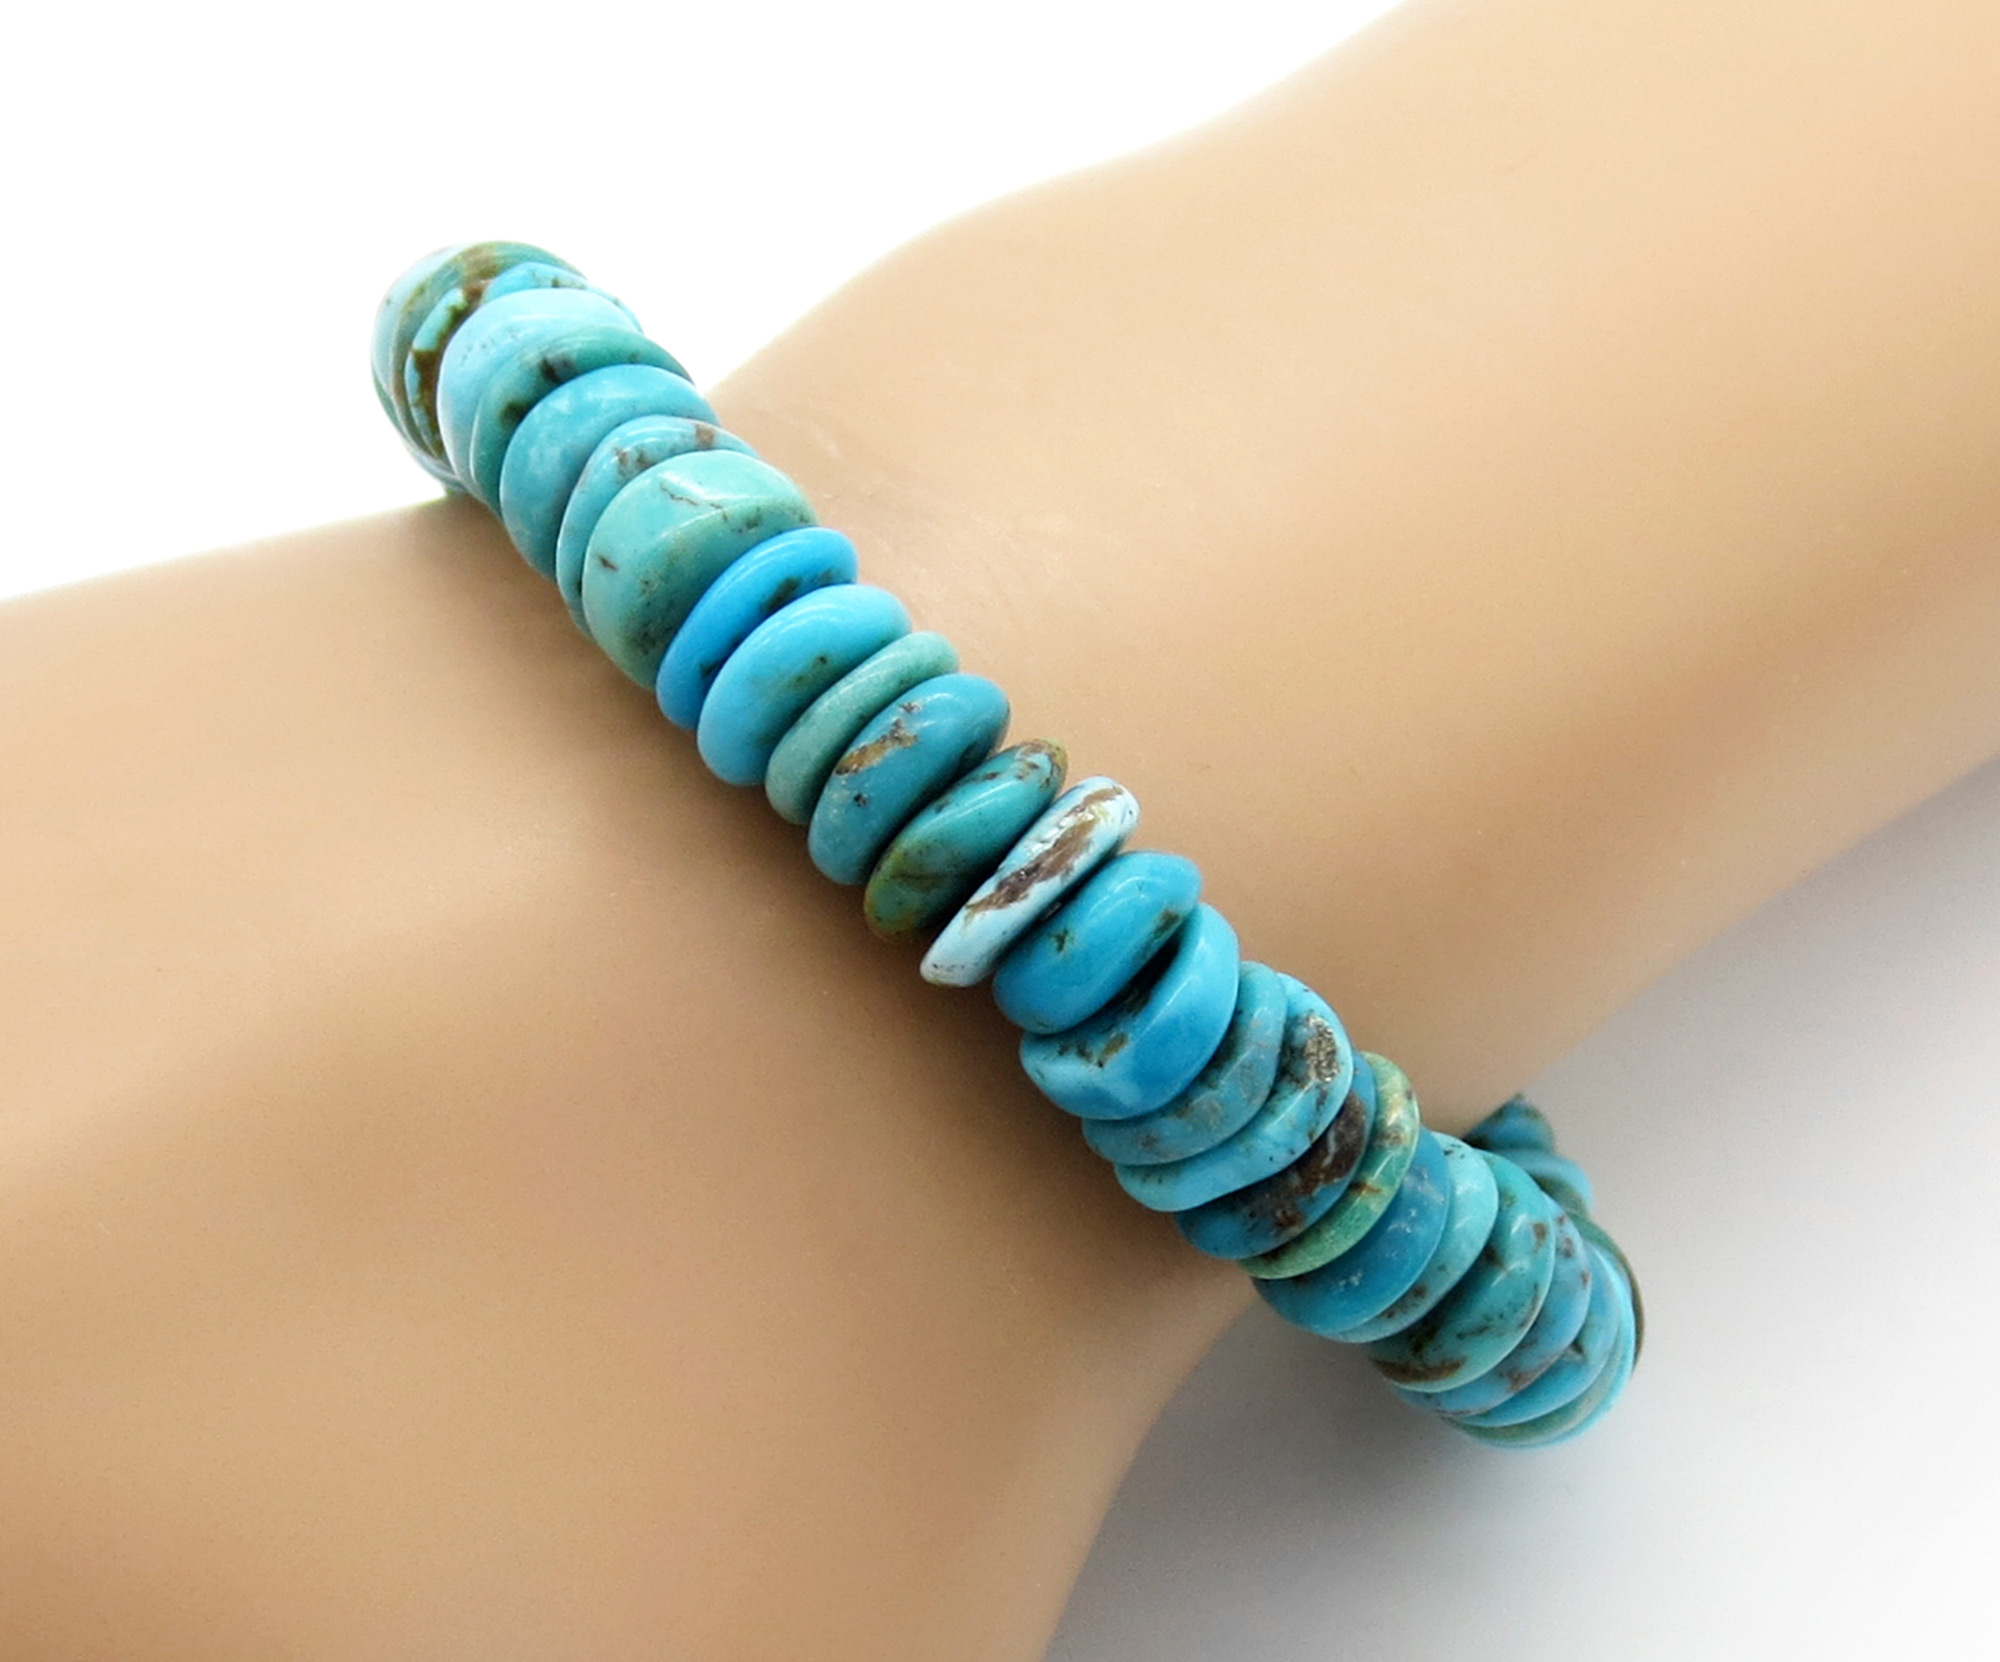 Stretchy Turquoise Bracelet Native American Jewelry - 6268rio